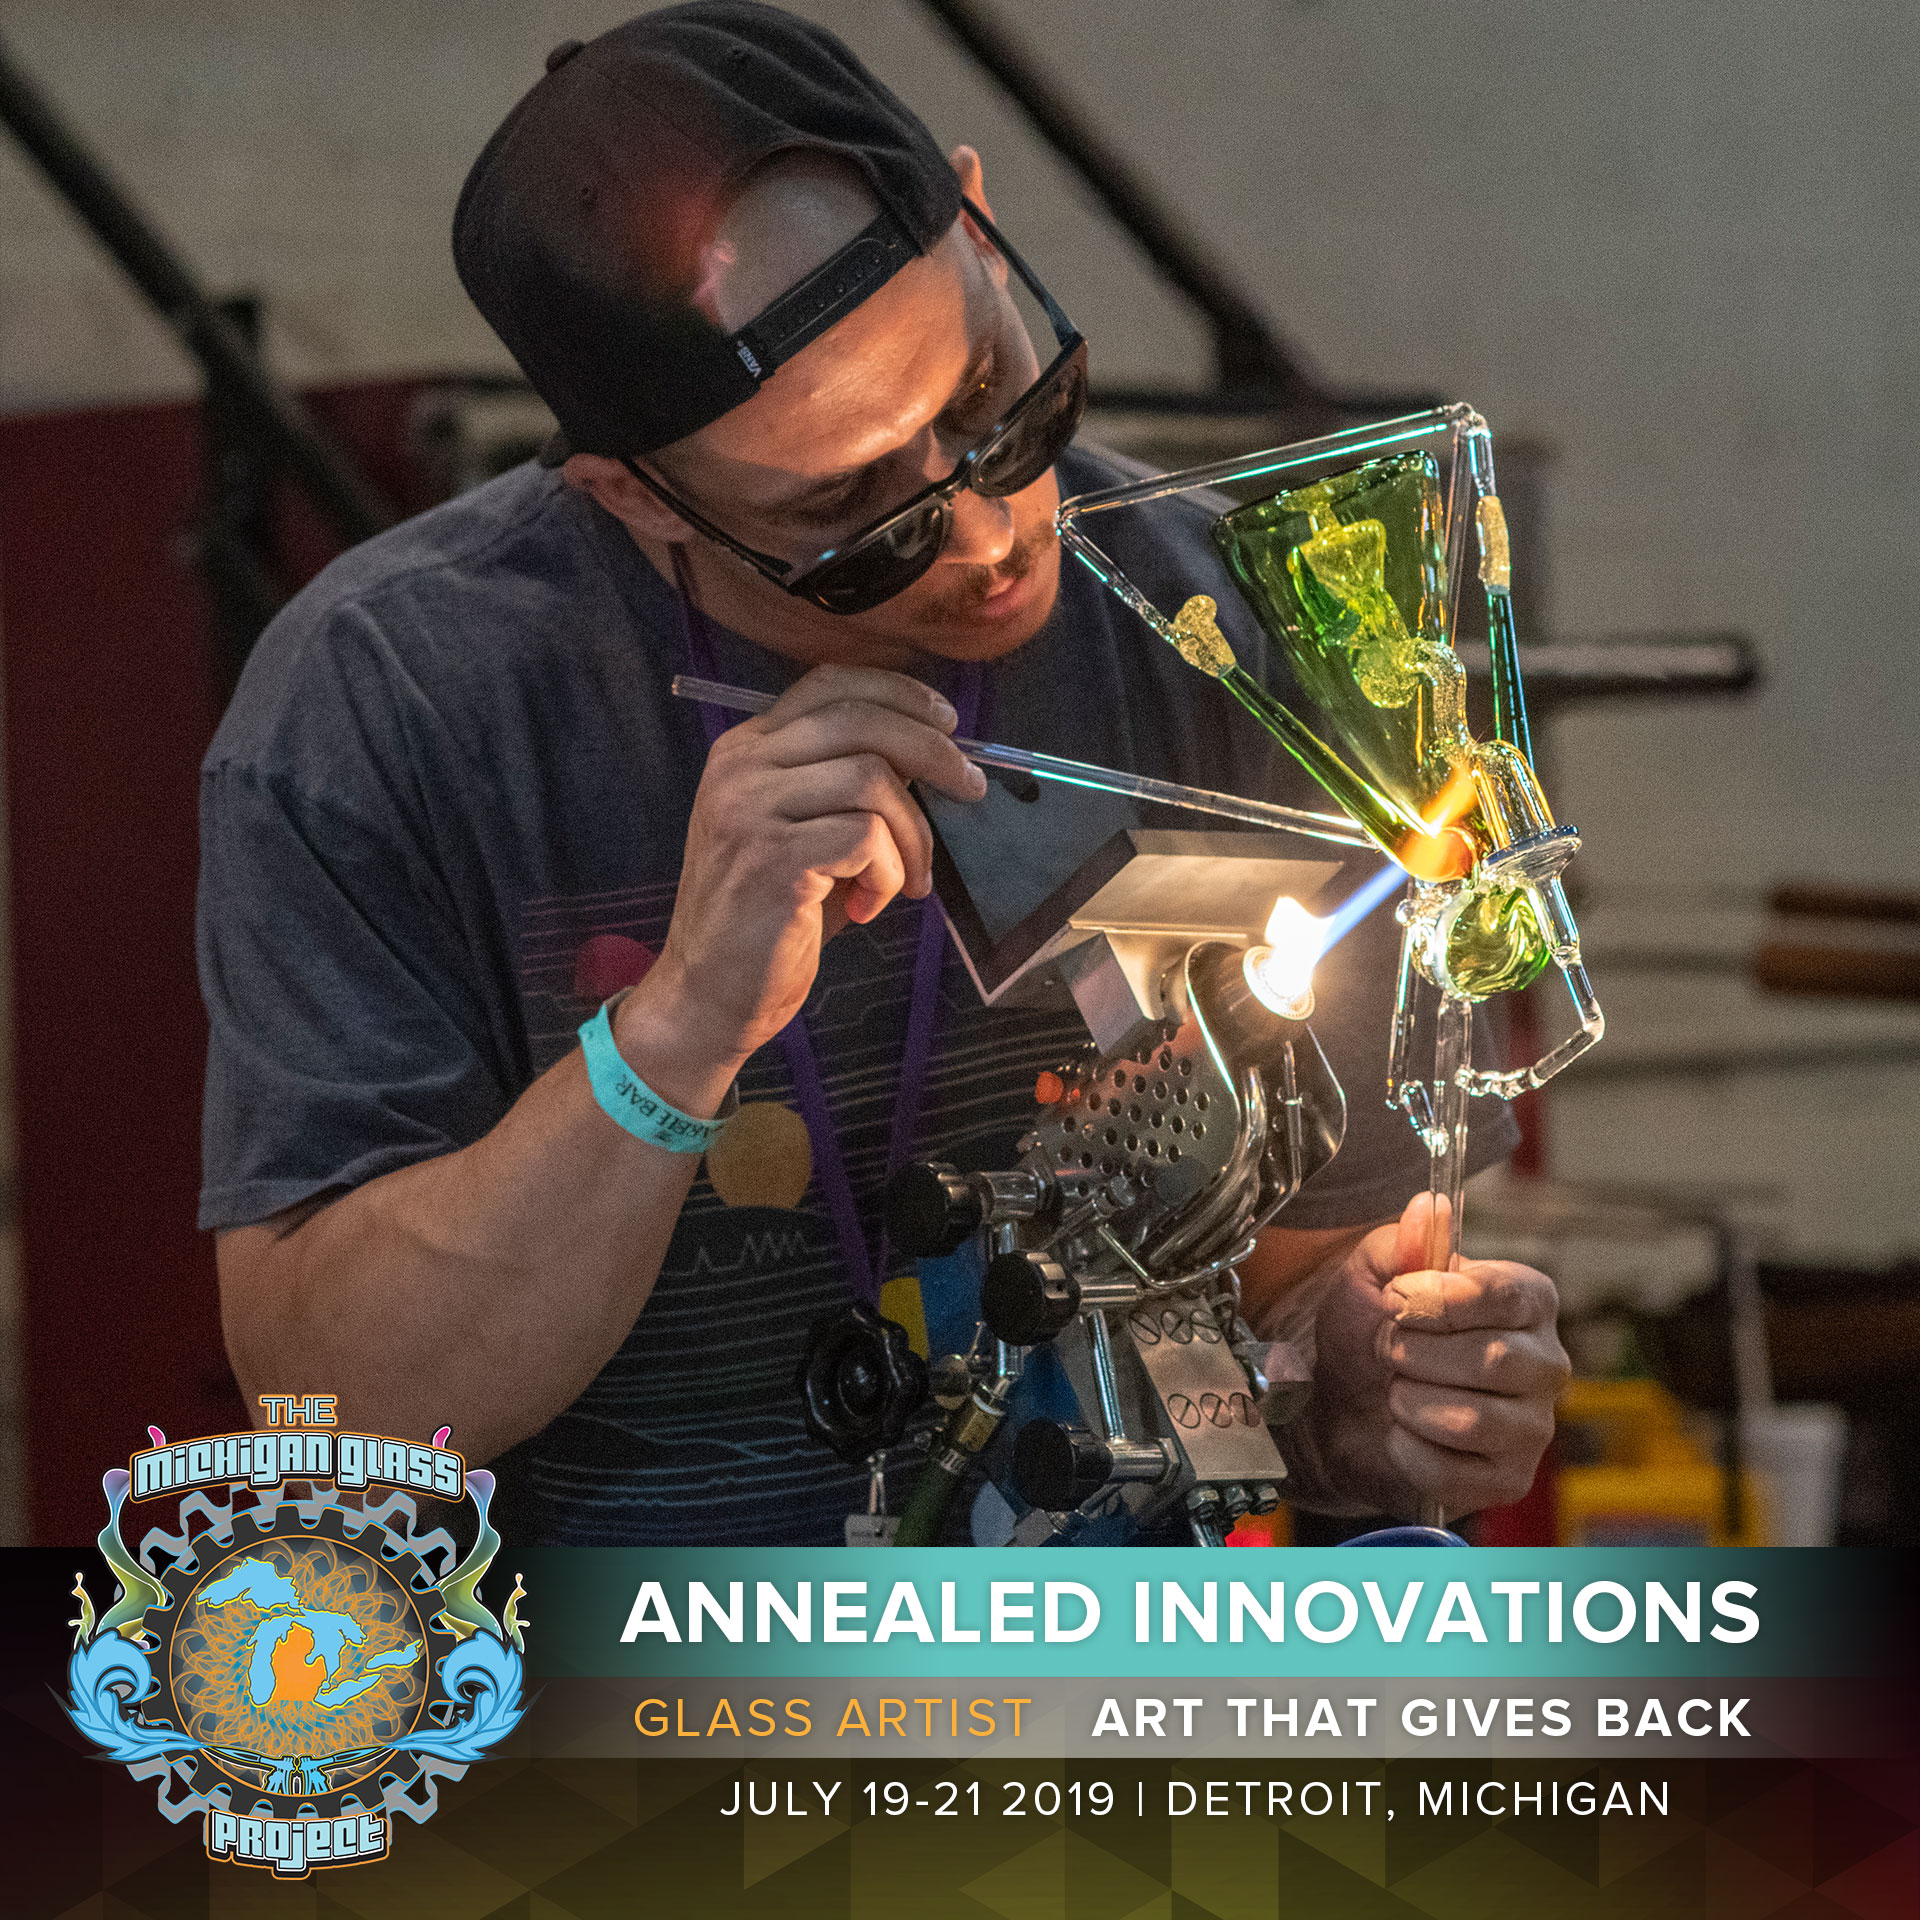 Annealed-Innovations_Shoutout-1